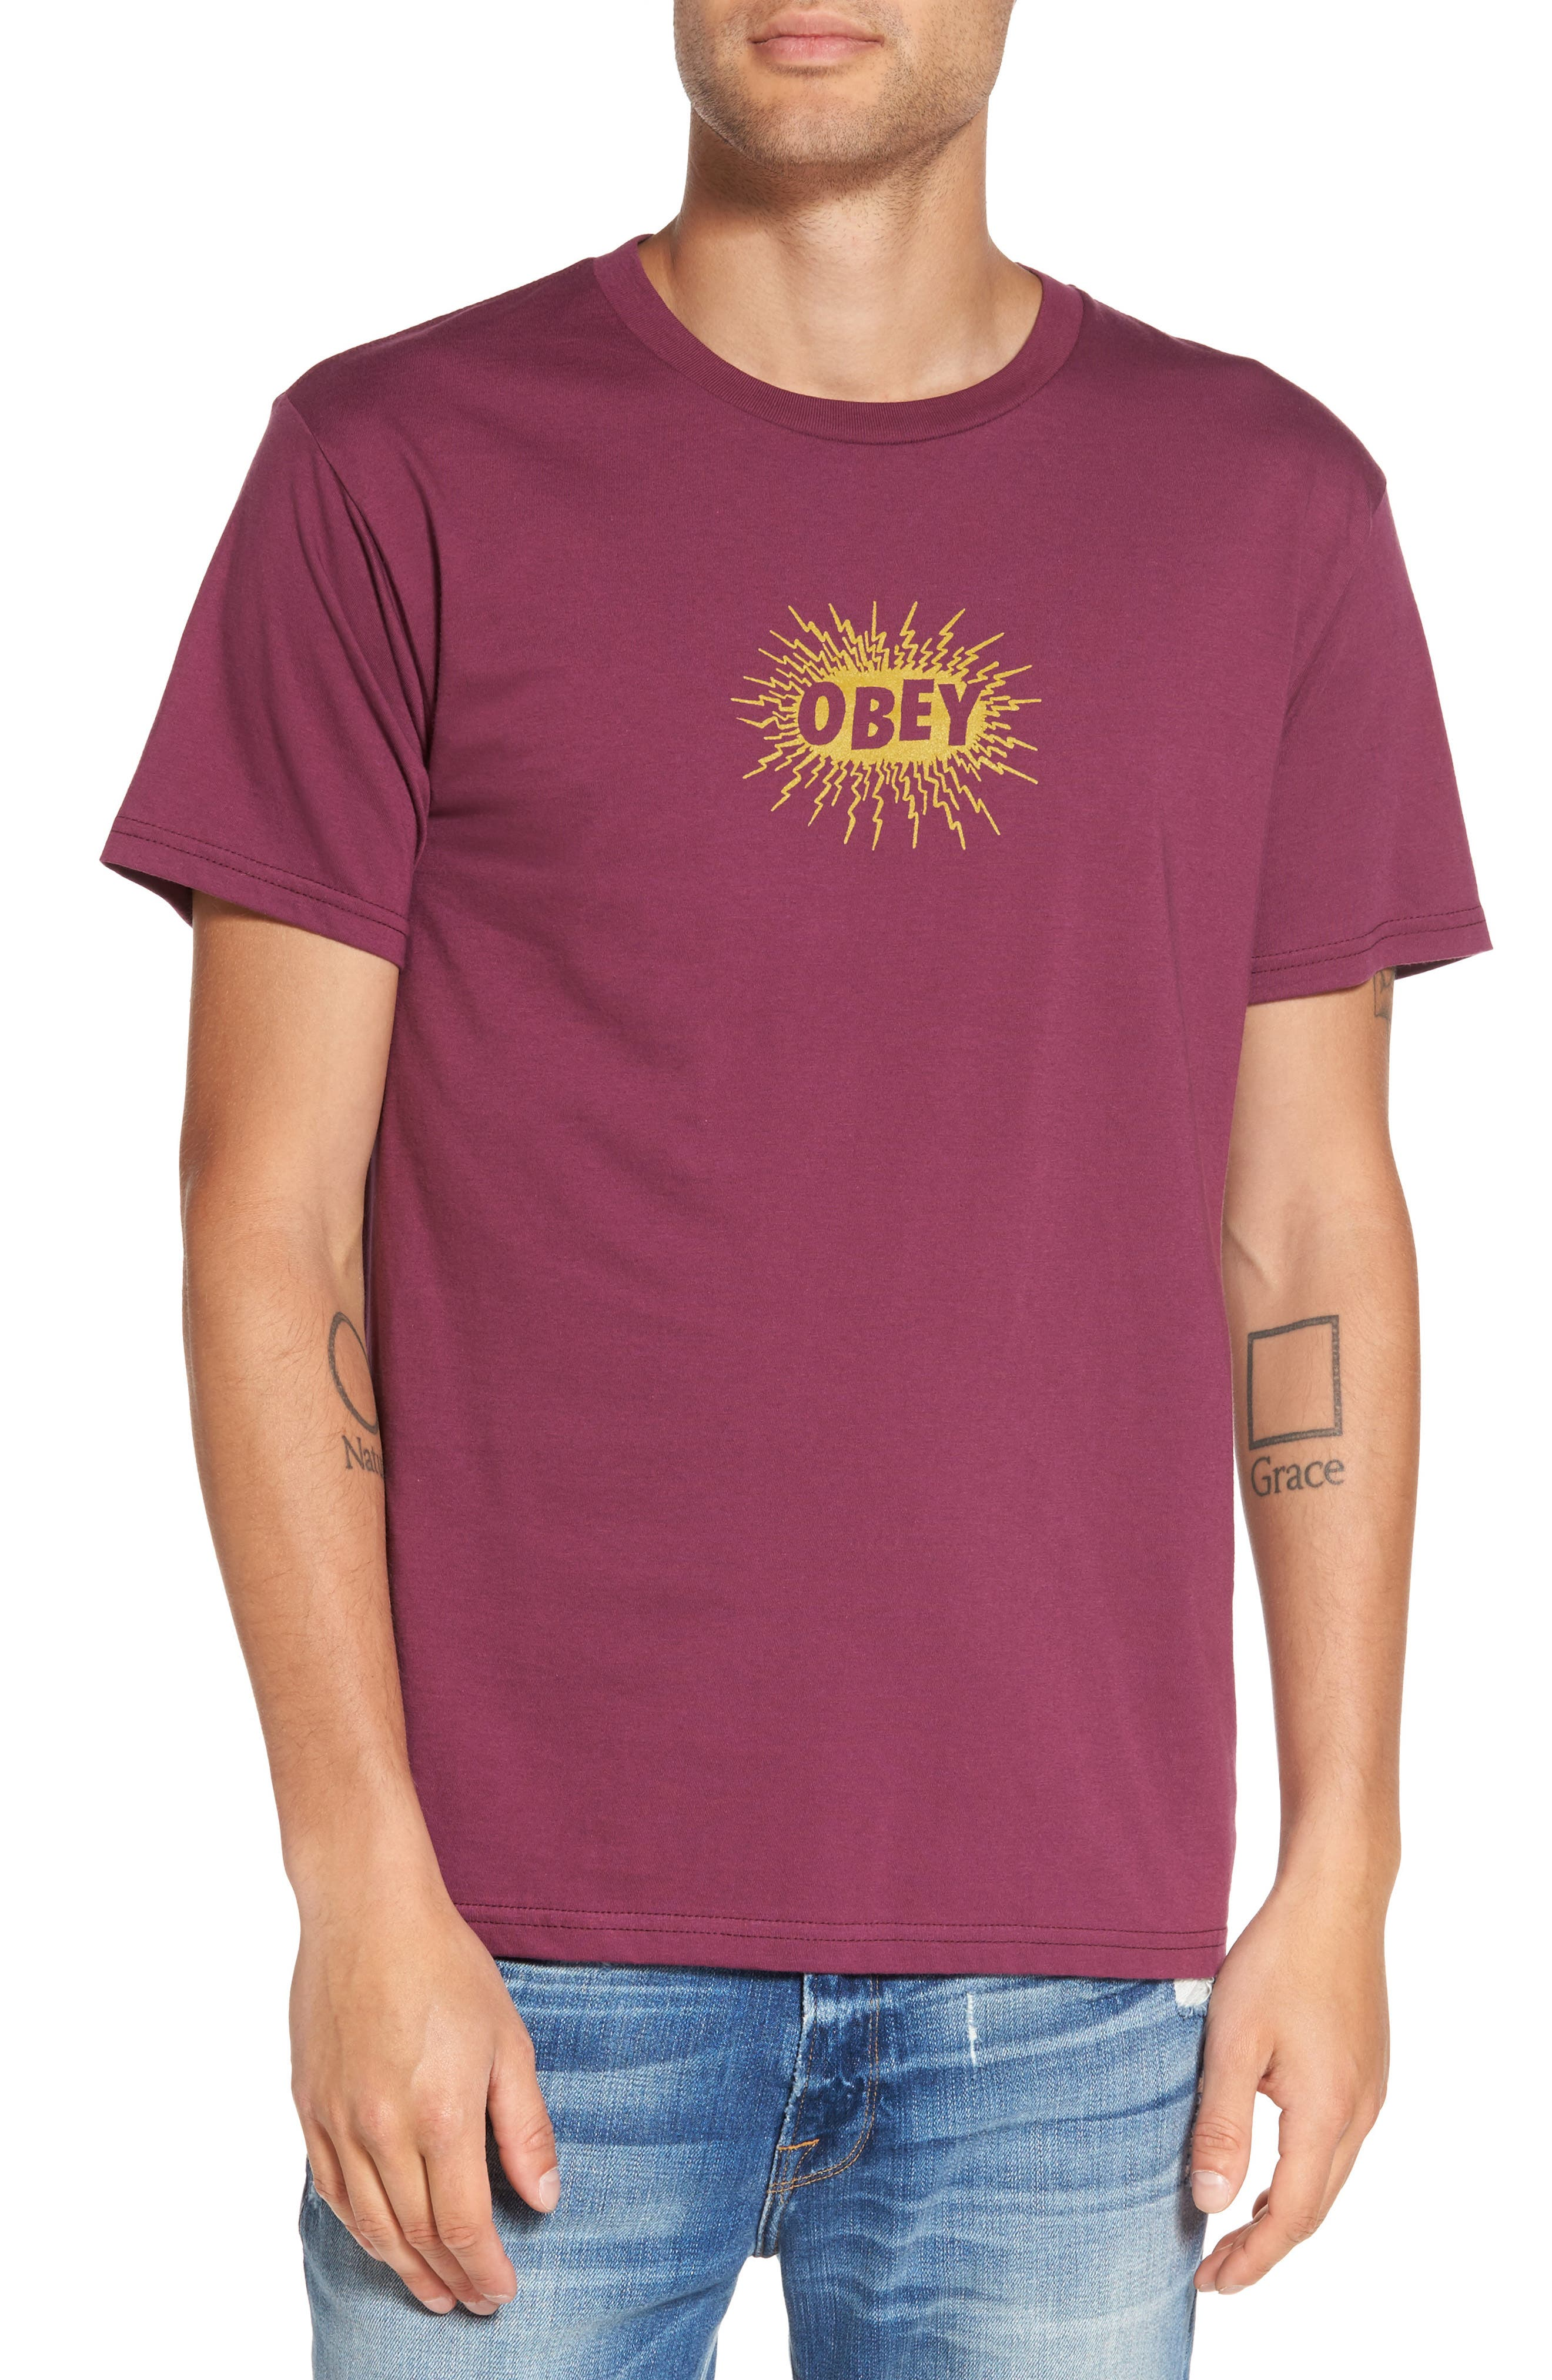 Main Image - Obey Spazz Graphic T-Shirt